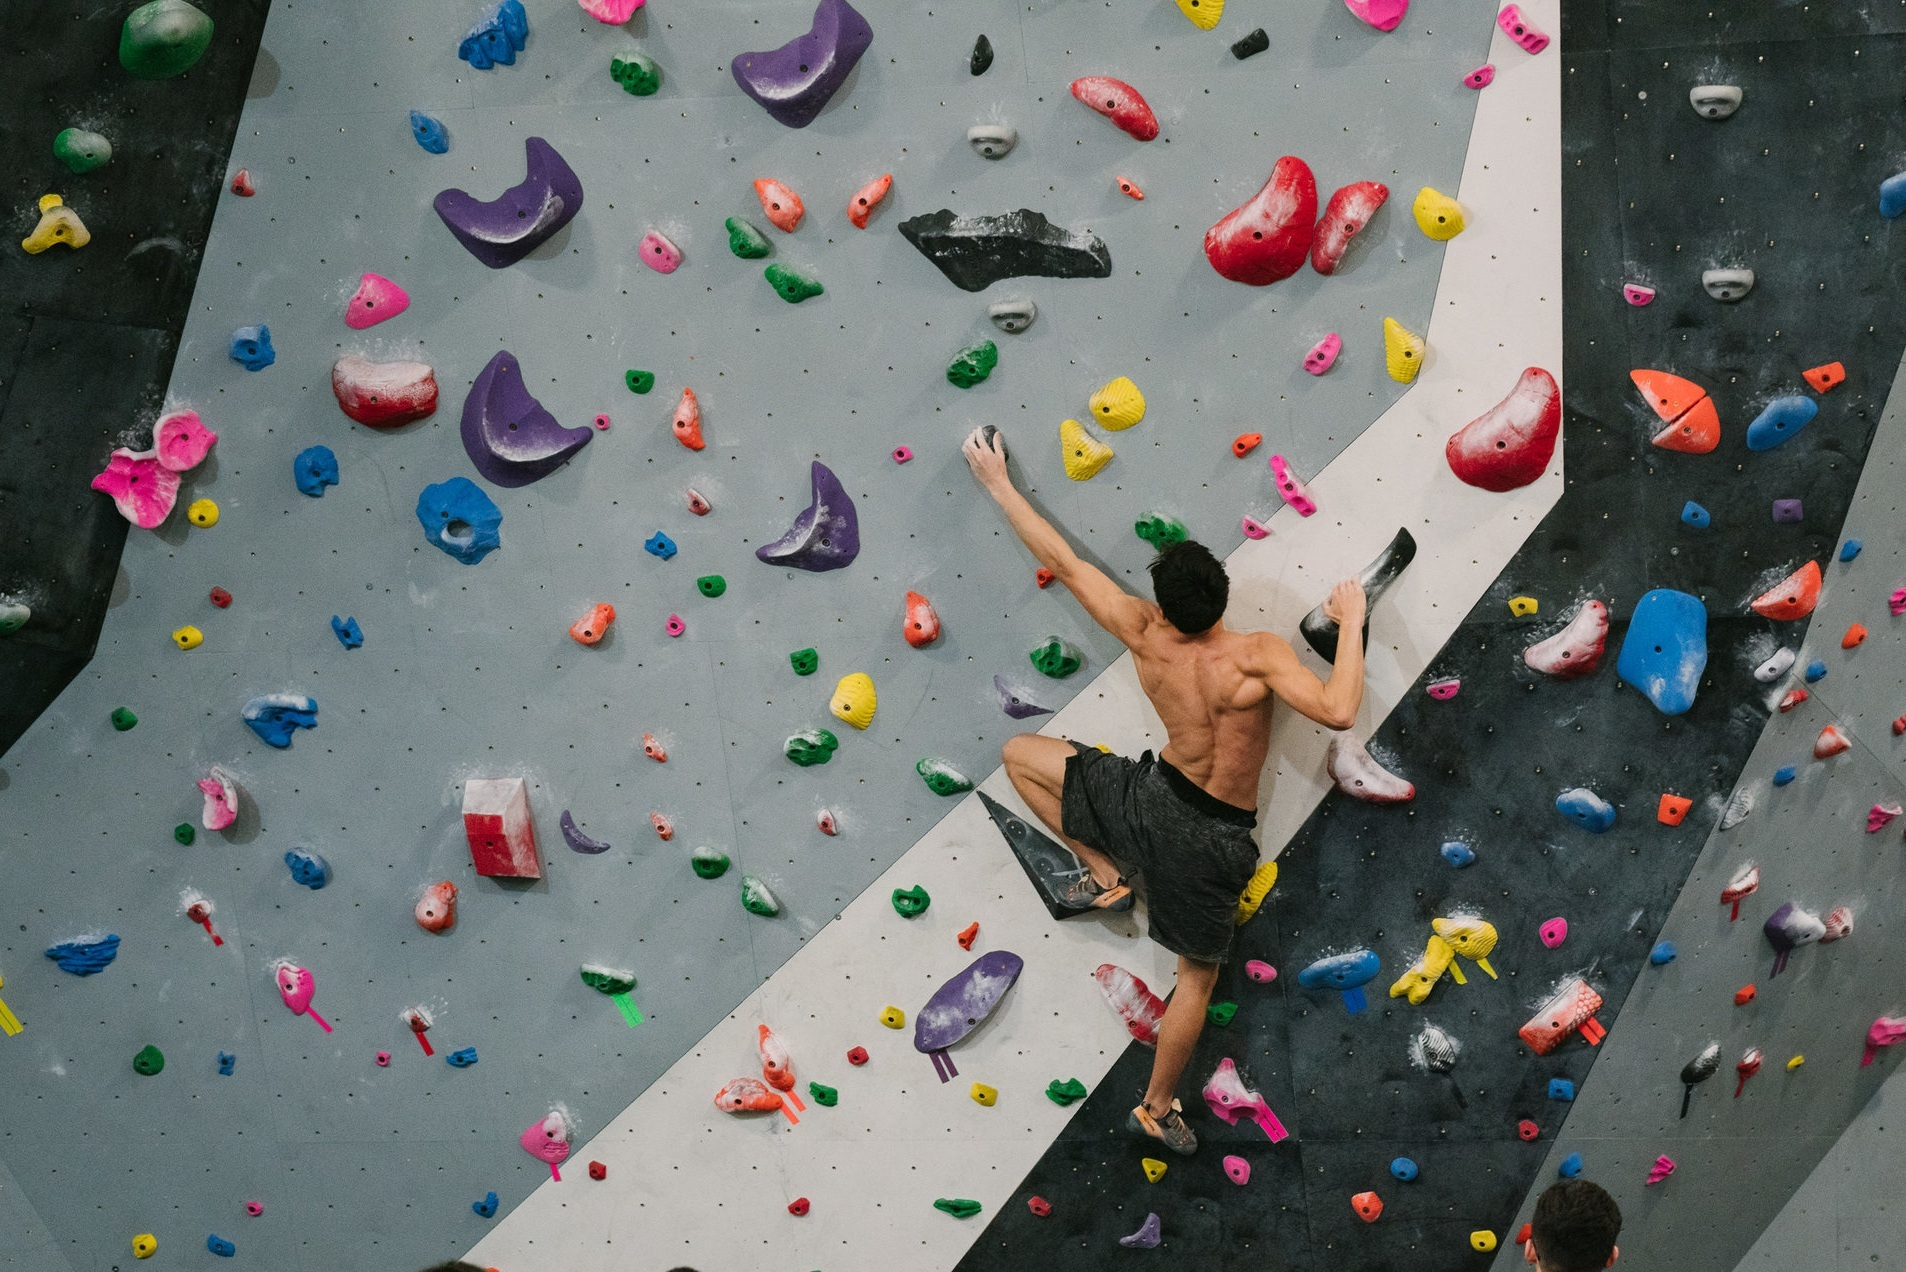 Complement Your Climbing! - withADVANCED CORE TRAINING & EDUCATION